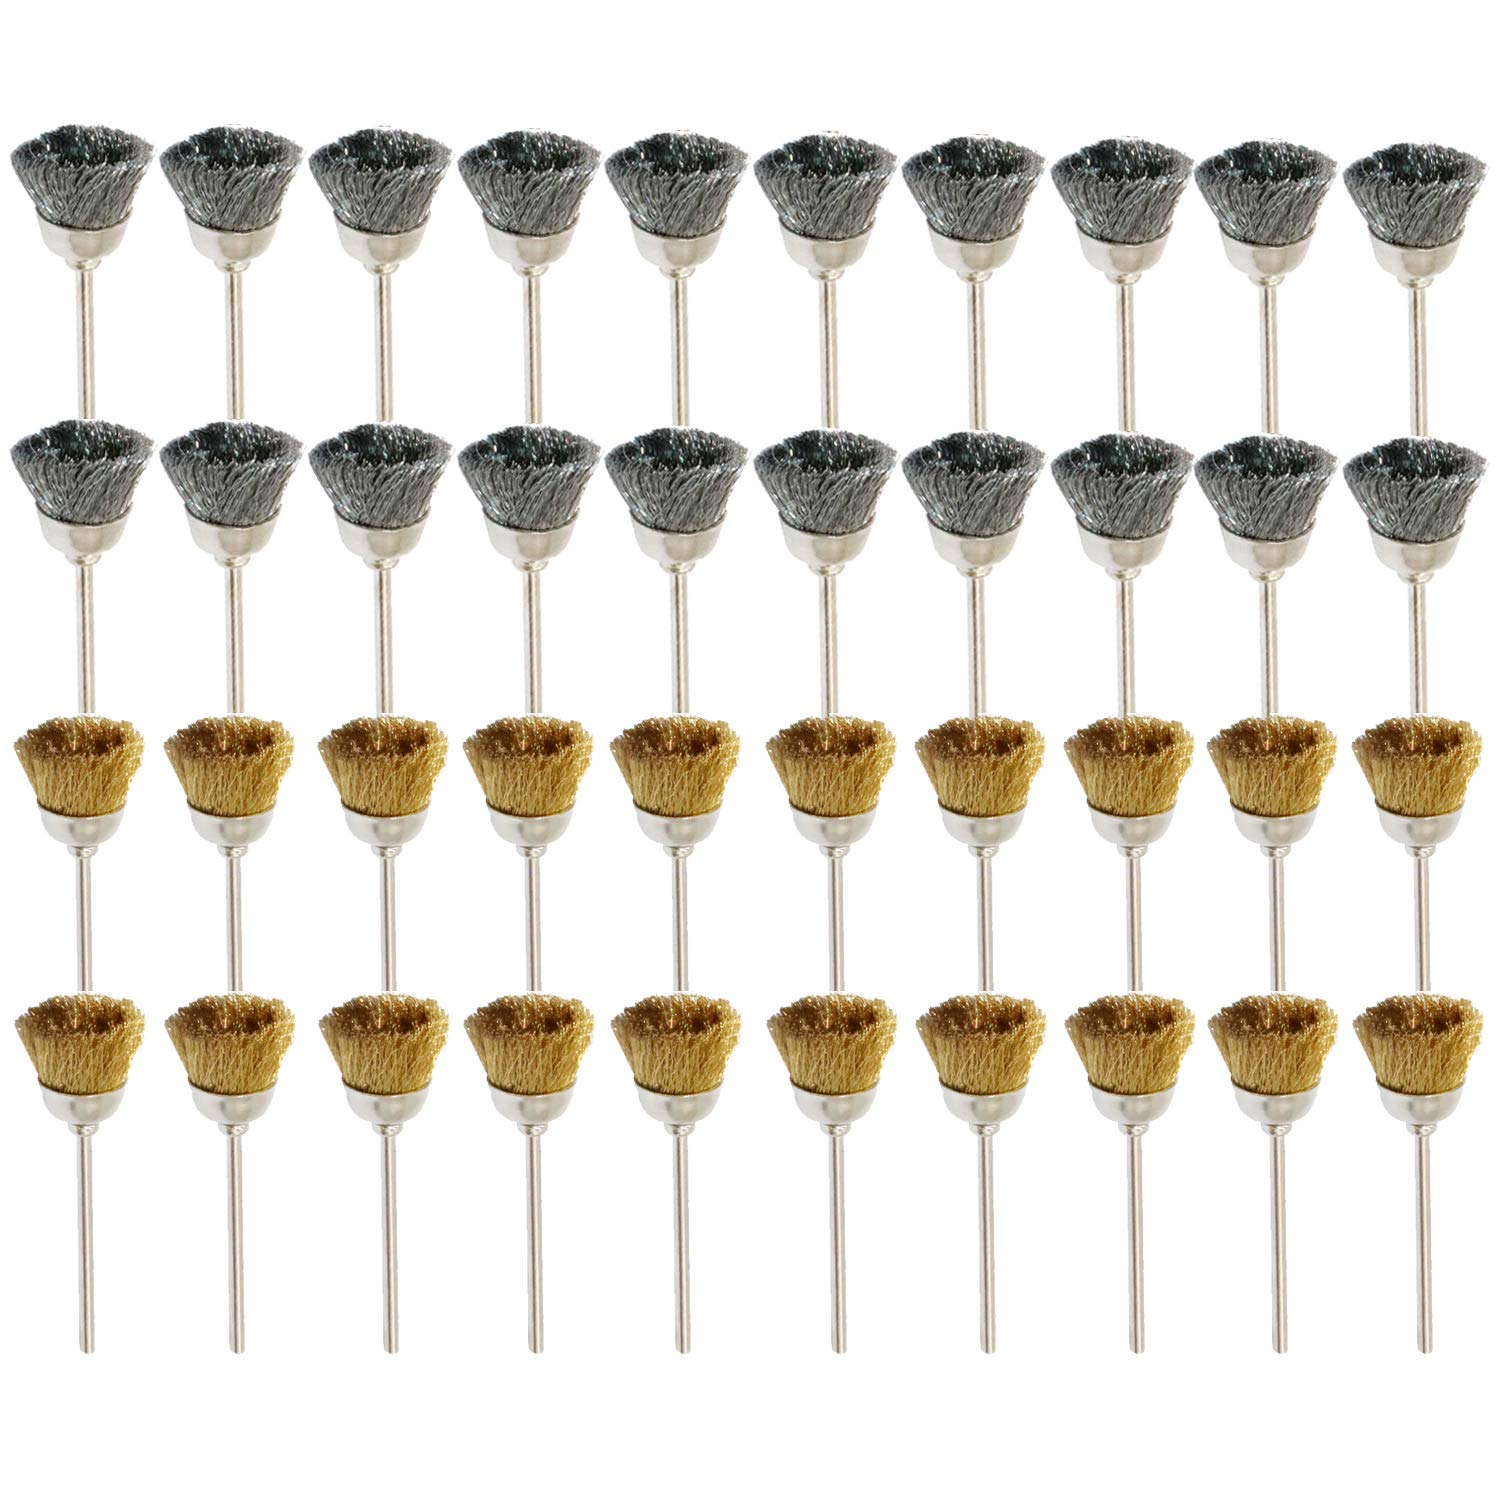 NIUPIKA 3mm Steel Brass Wire Brushes Wheel Cleaning Cup Brush Polishing Attachment for Dremel Die Grinder Rotary Tools 40 Pcs HBM0061